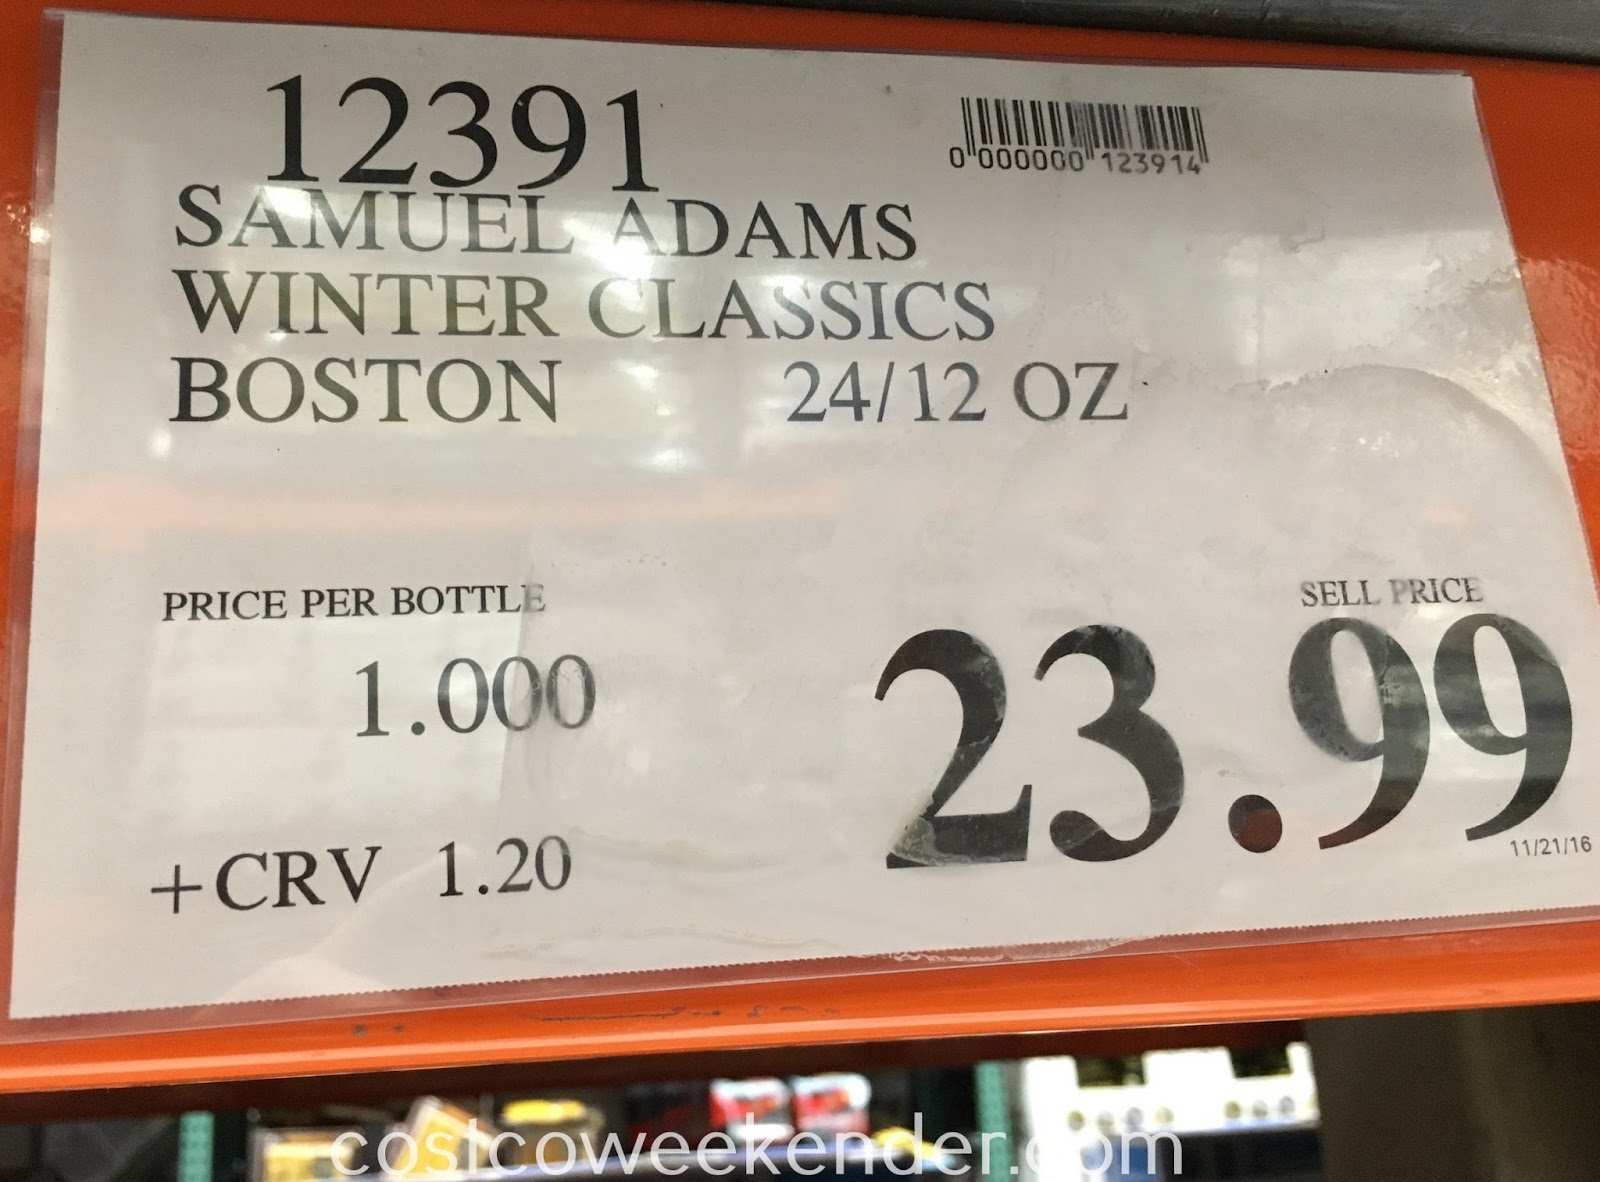 Deal for the Samuel Adams Winter Classics Collection at Costco